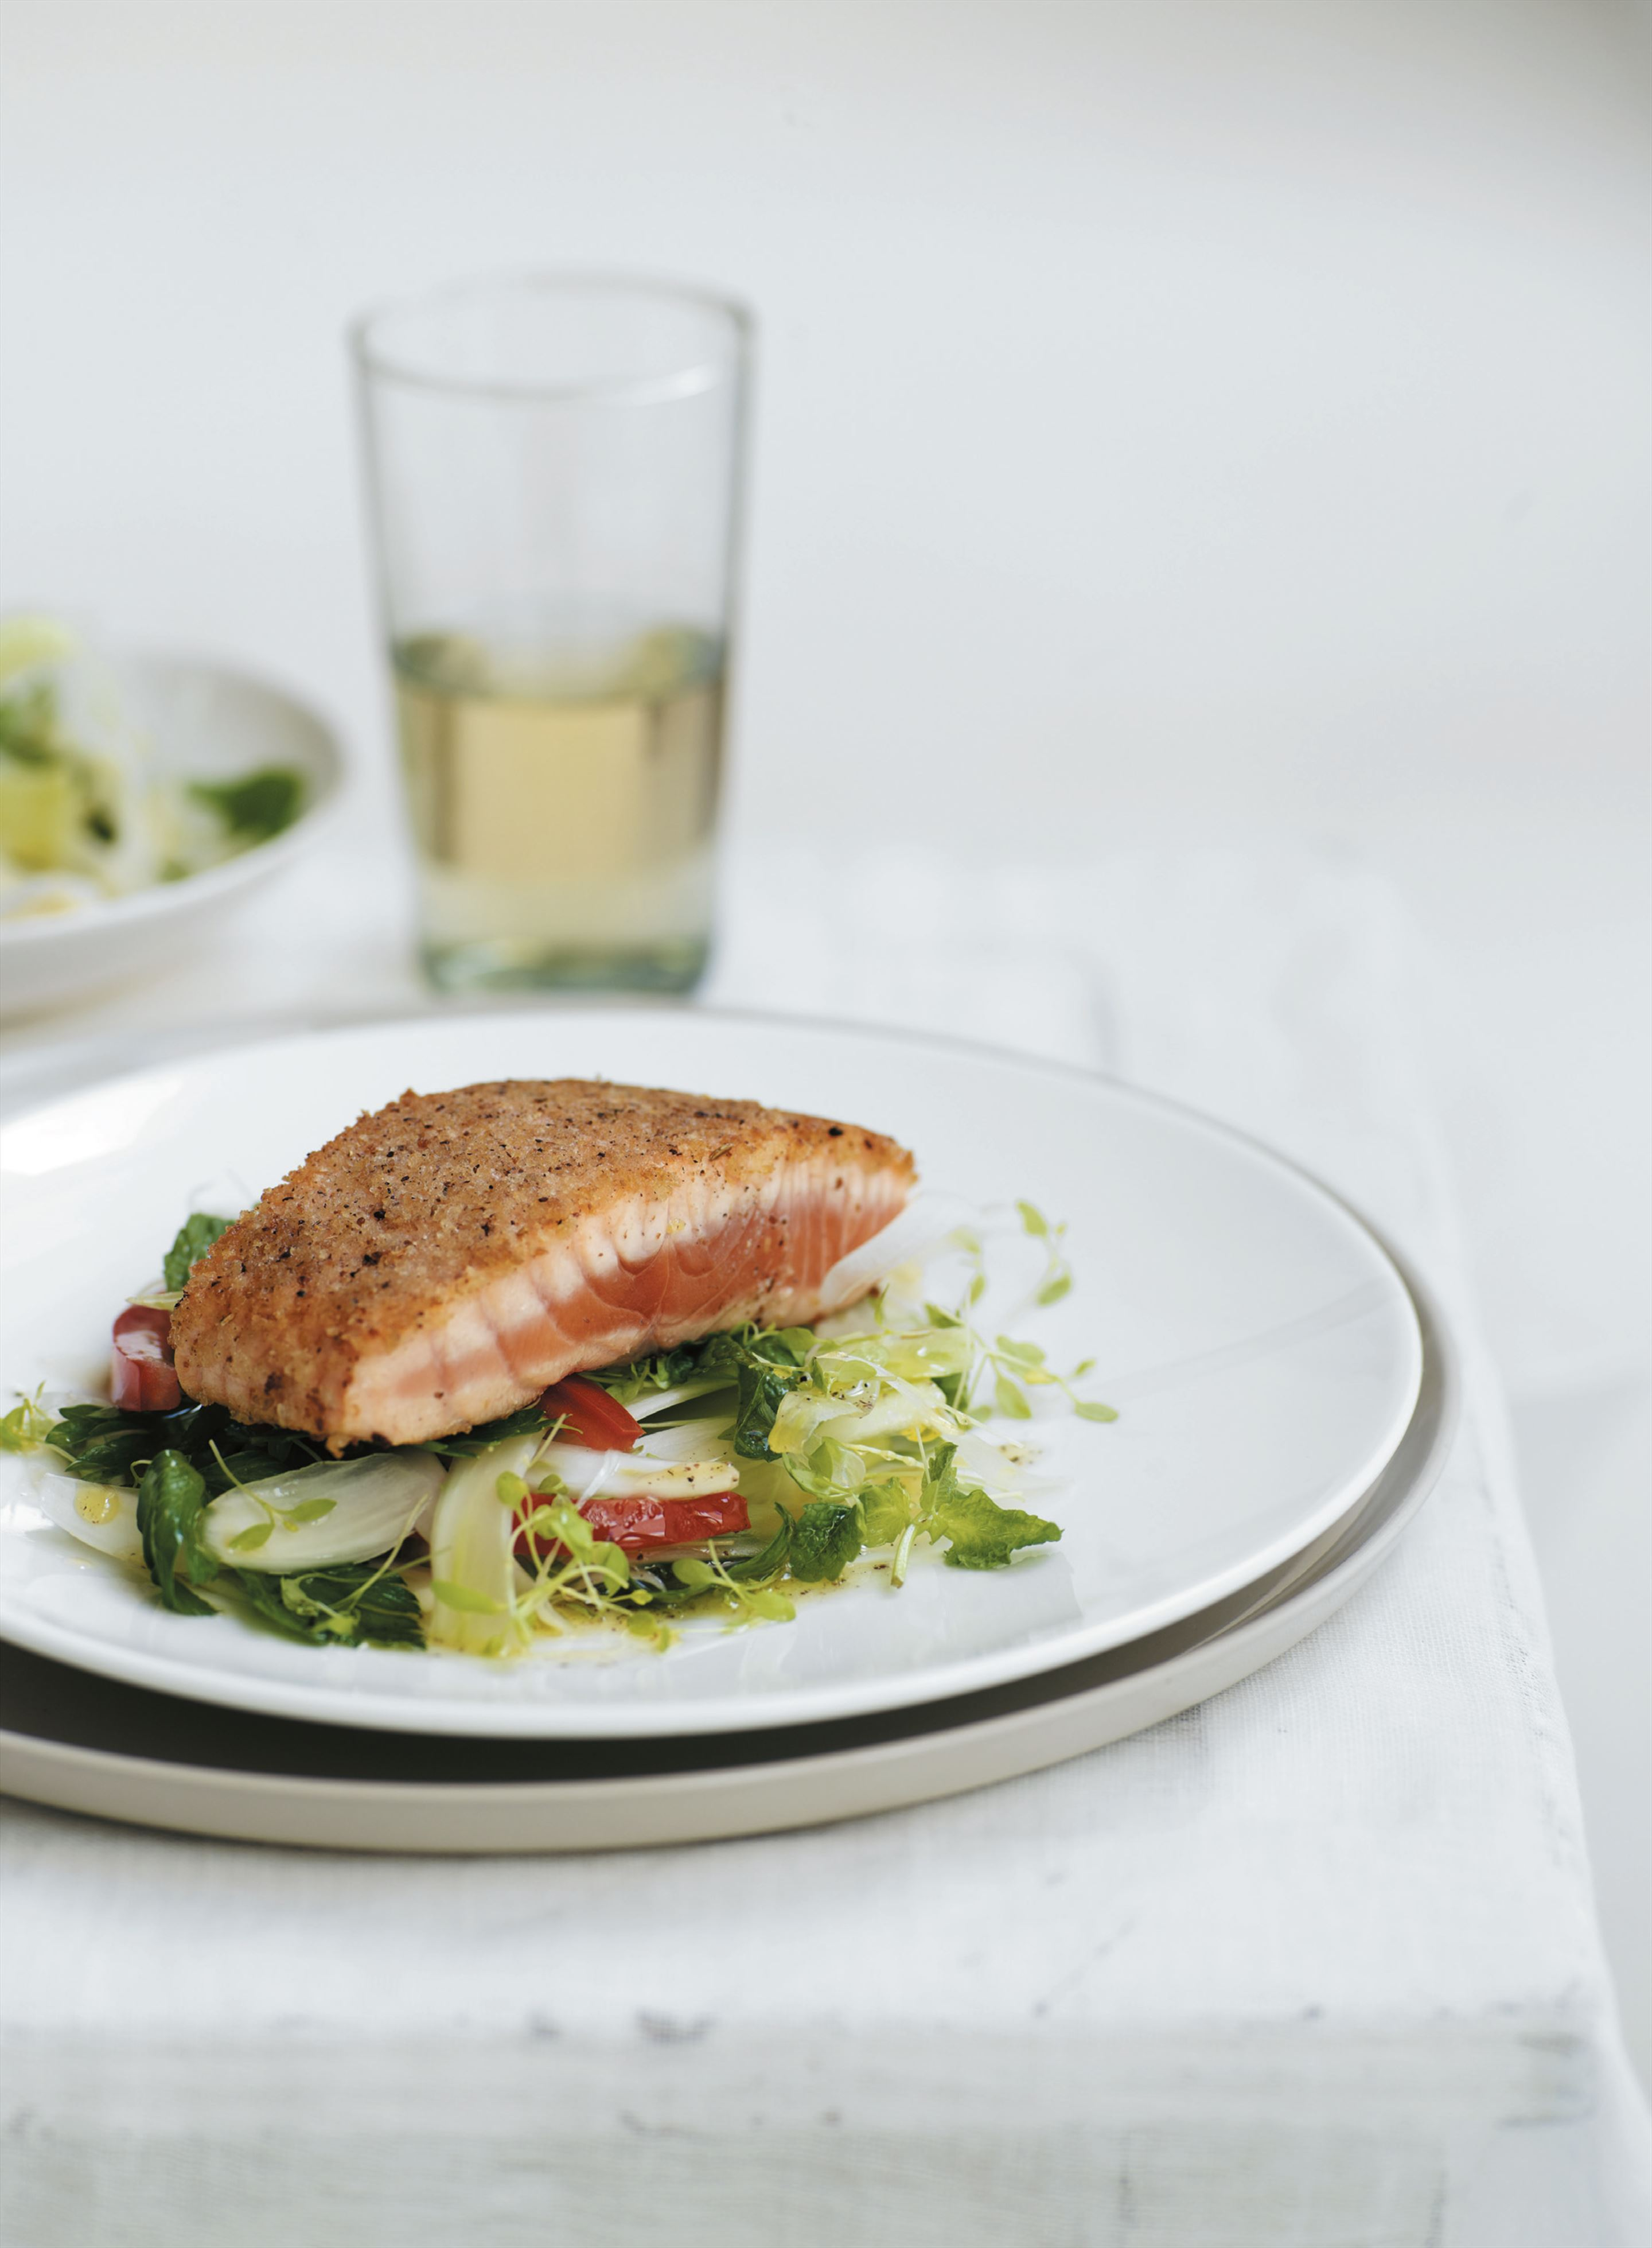 Salmon grilled with sumac and fennel crumbs